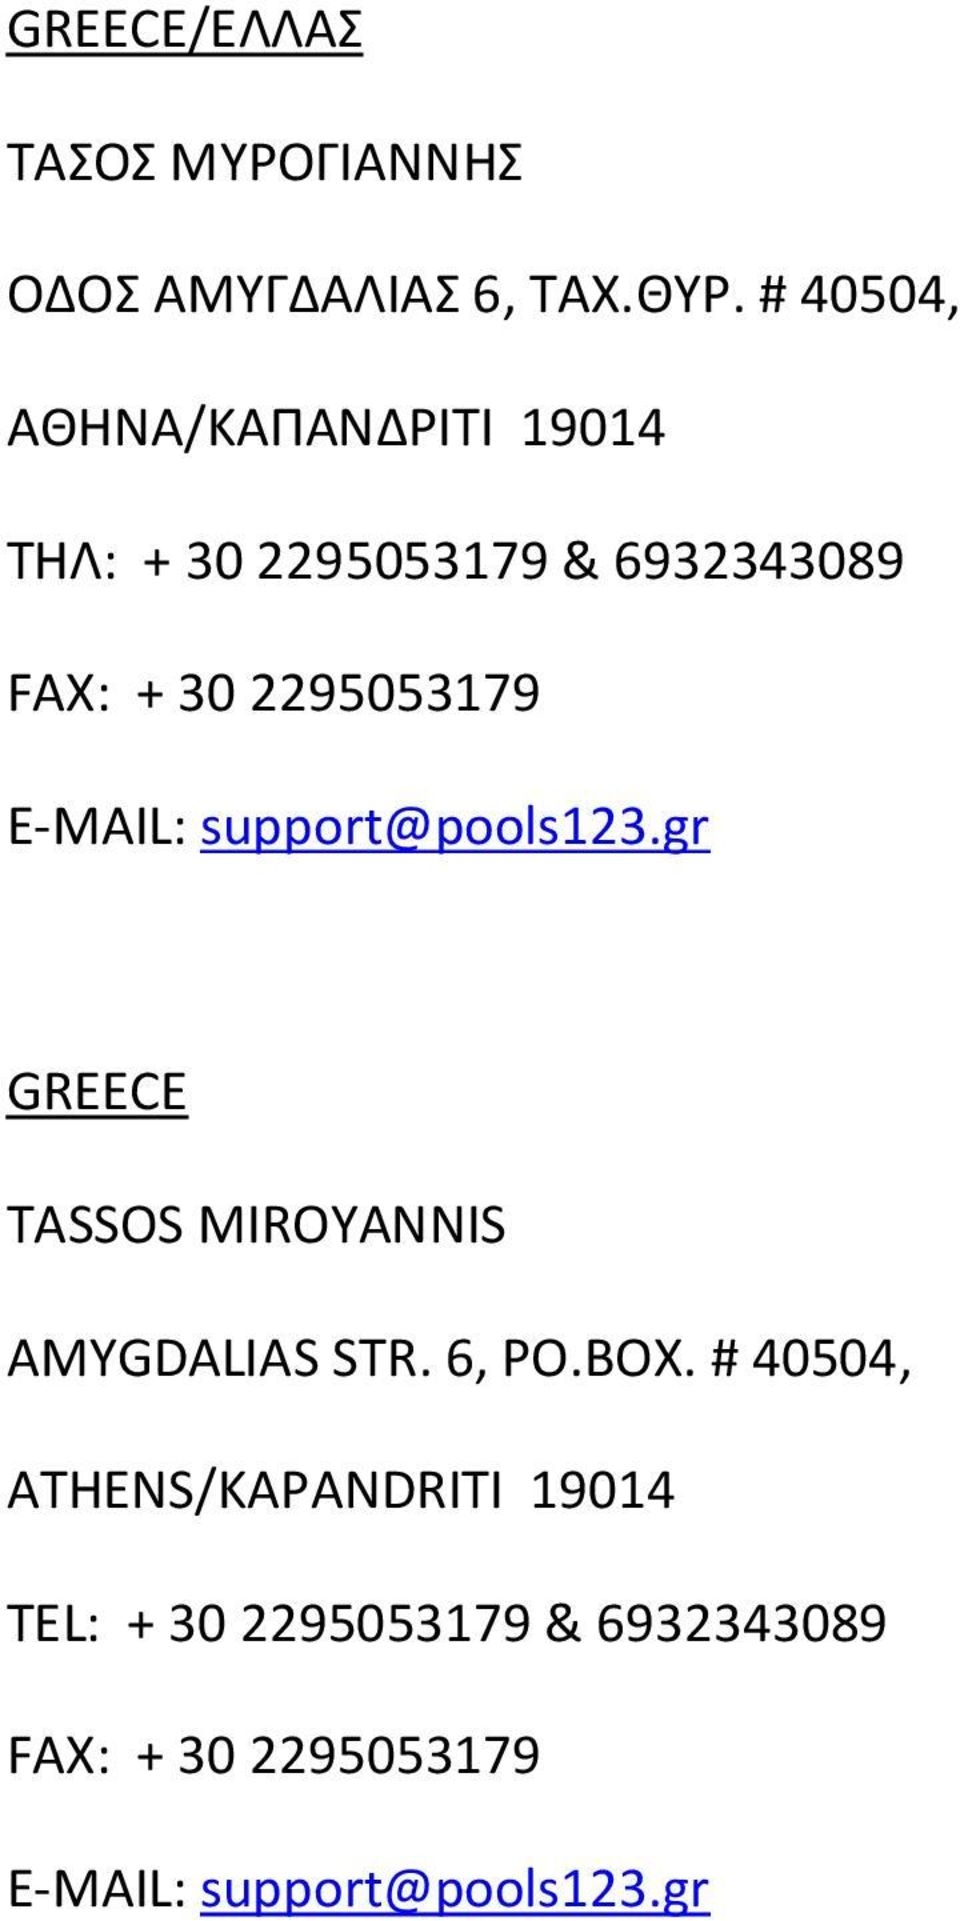 E-MAIL: support@pools3.gr GREECE TASSOS MIROYANNIS AMYGDALIAS STR. 6, PO.BOX.